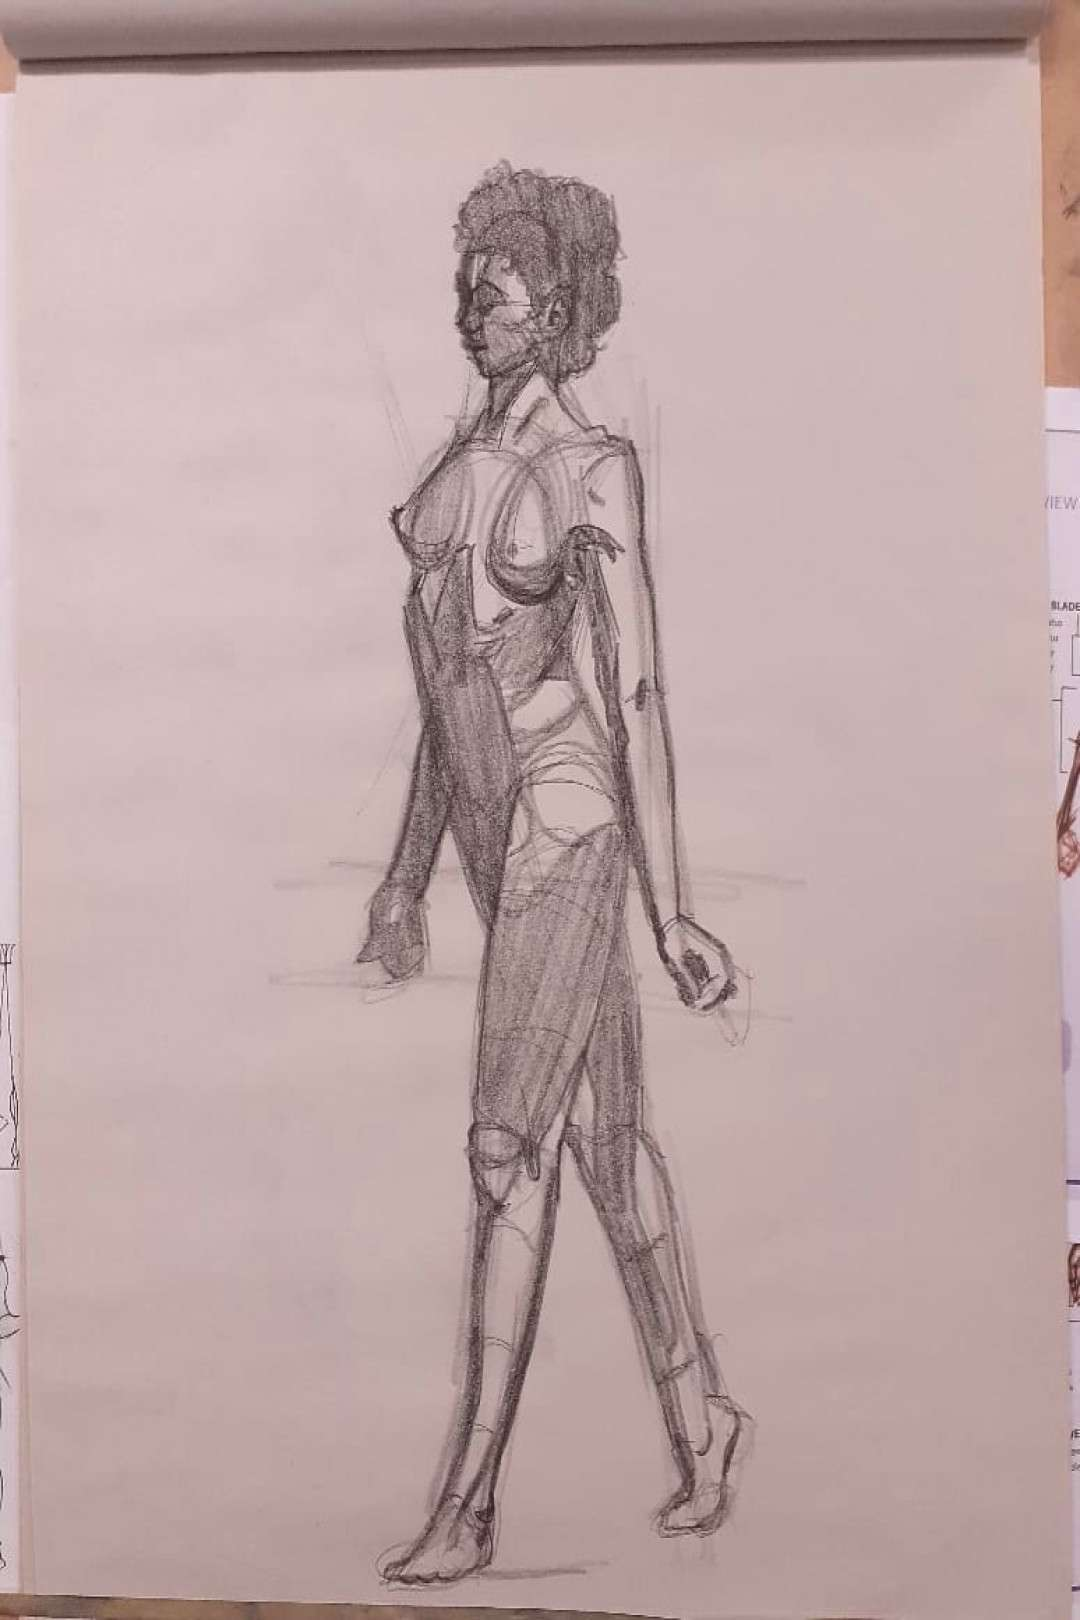 Another session of figure drawing and gestire studies from today